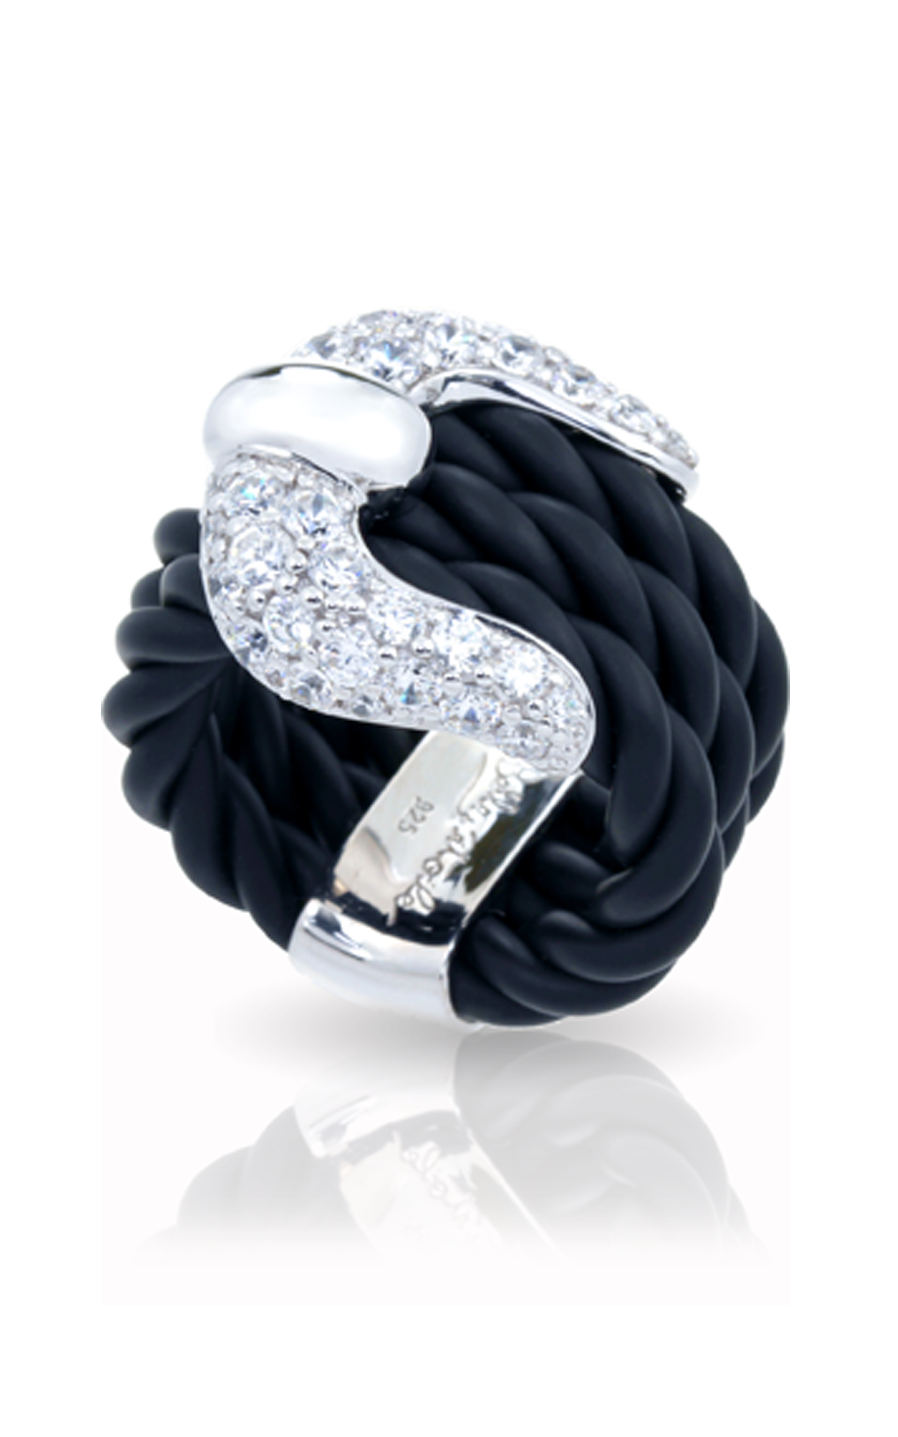 Belle Etoile Lasso Black Ring 01051010101-5 product image